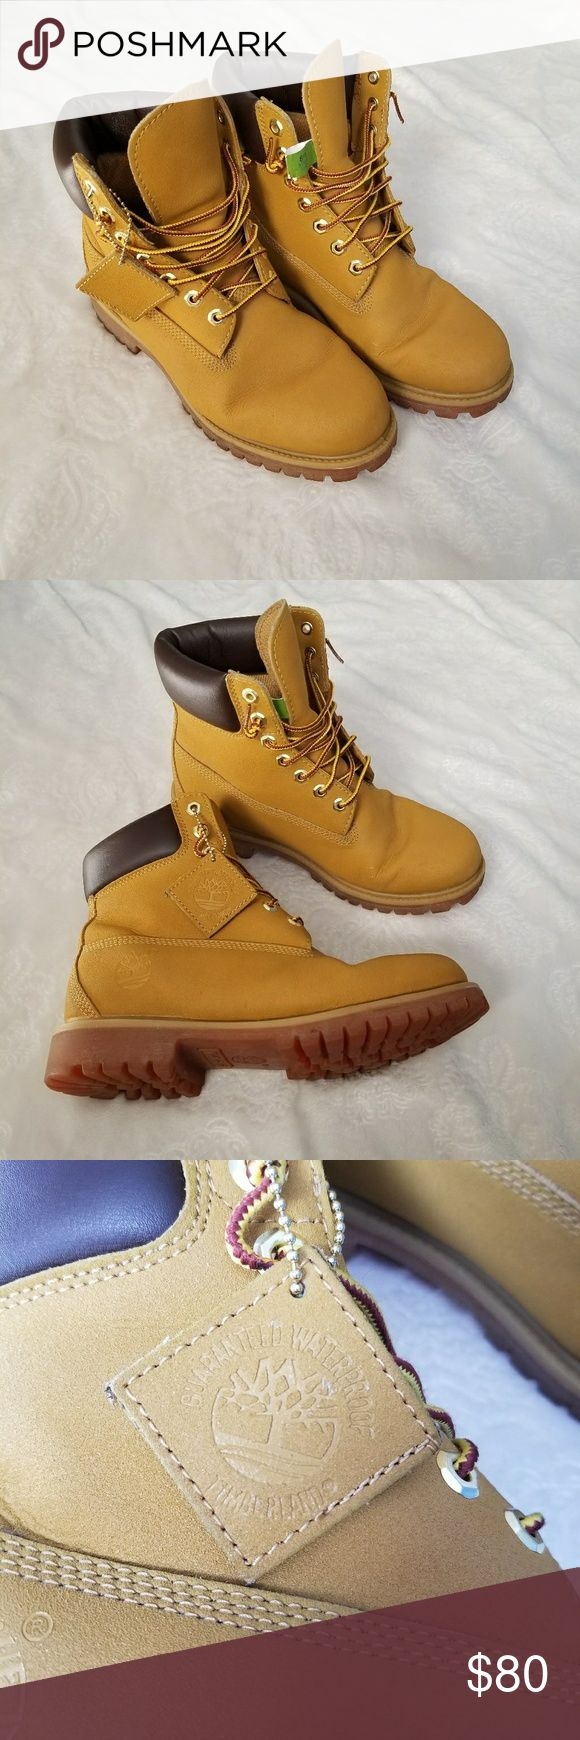 """Timberland Original Hightop Waterproof Boots These boots from Timberland are guaranteed waterproof, 100% leather. 2 small flaws to note, price written on bottom of boots, and slight cracking on one boot ( shown in last photo). Overall great condition.  Size 8 mens. Man made upper lining,  man made outsole. Boots in color """"wheat"""" smooth, not suede feel, hightop style. Timberland Shoes Boots"""